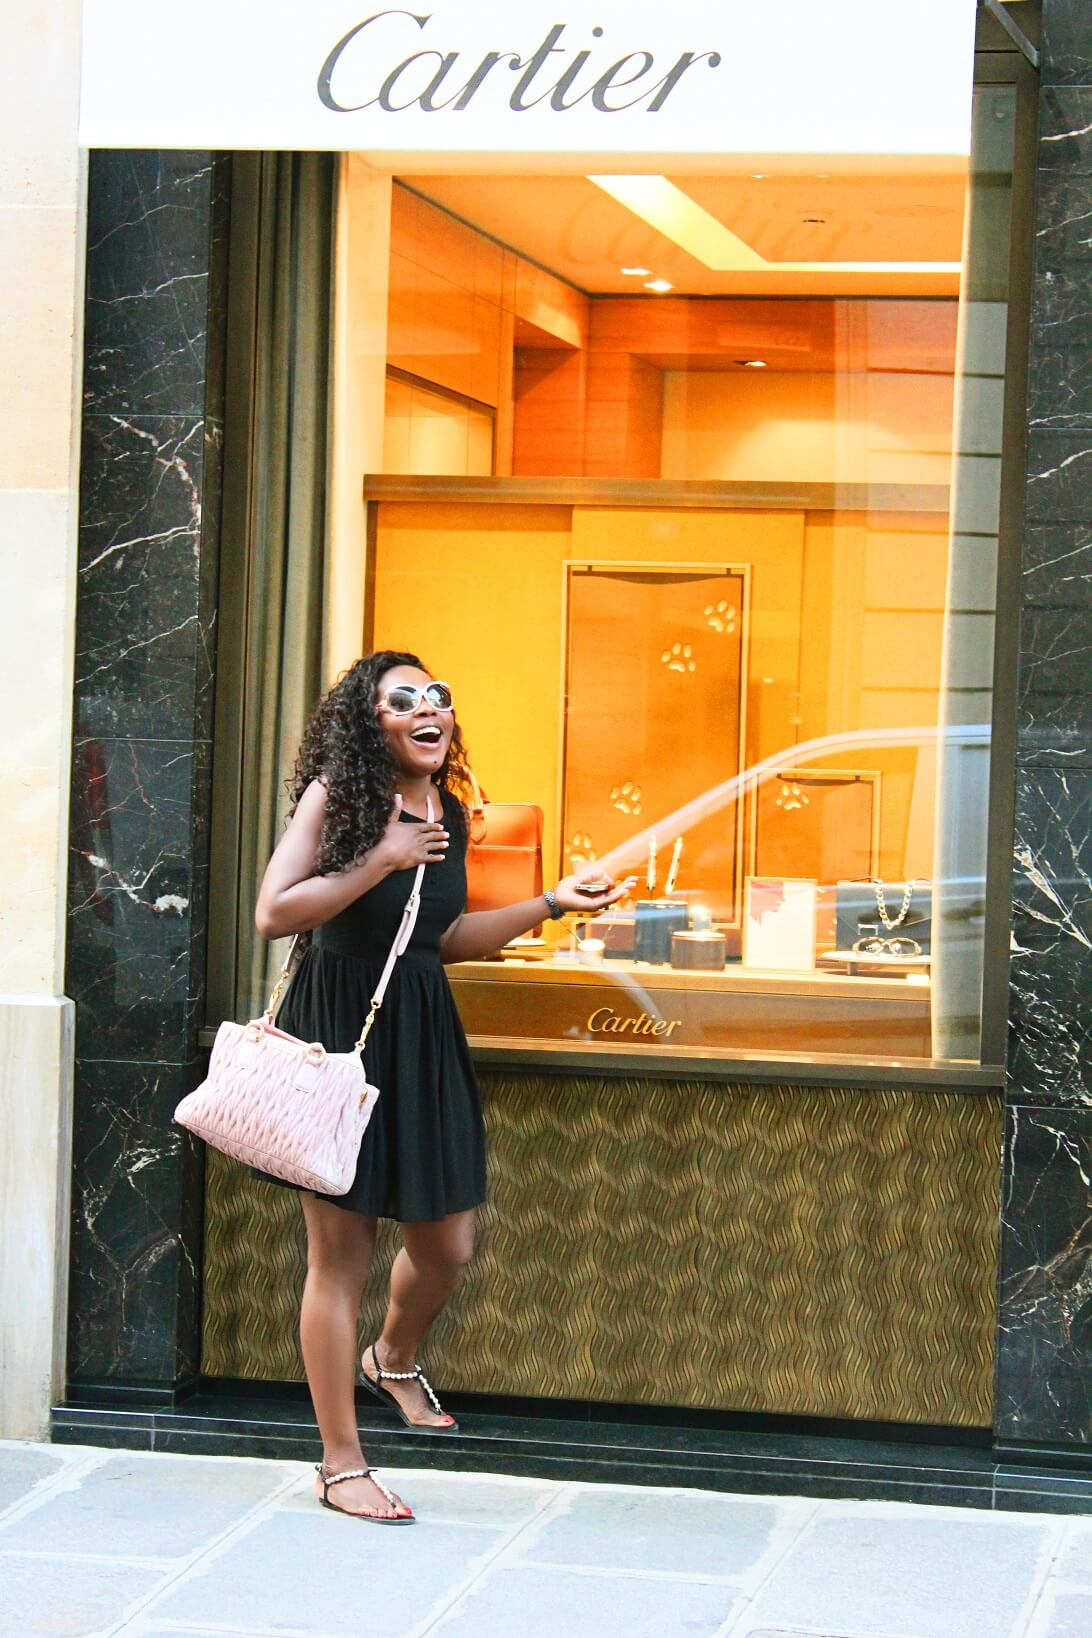 Shopping In France Window Cartier